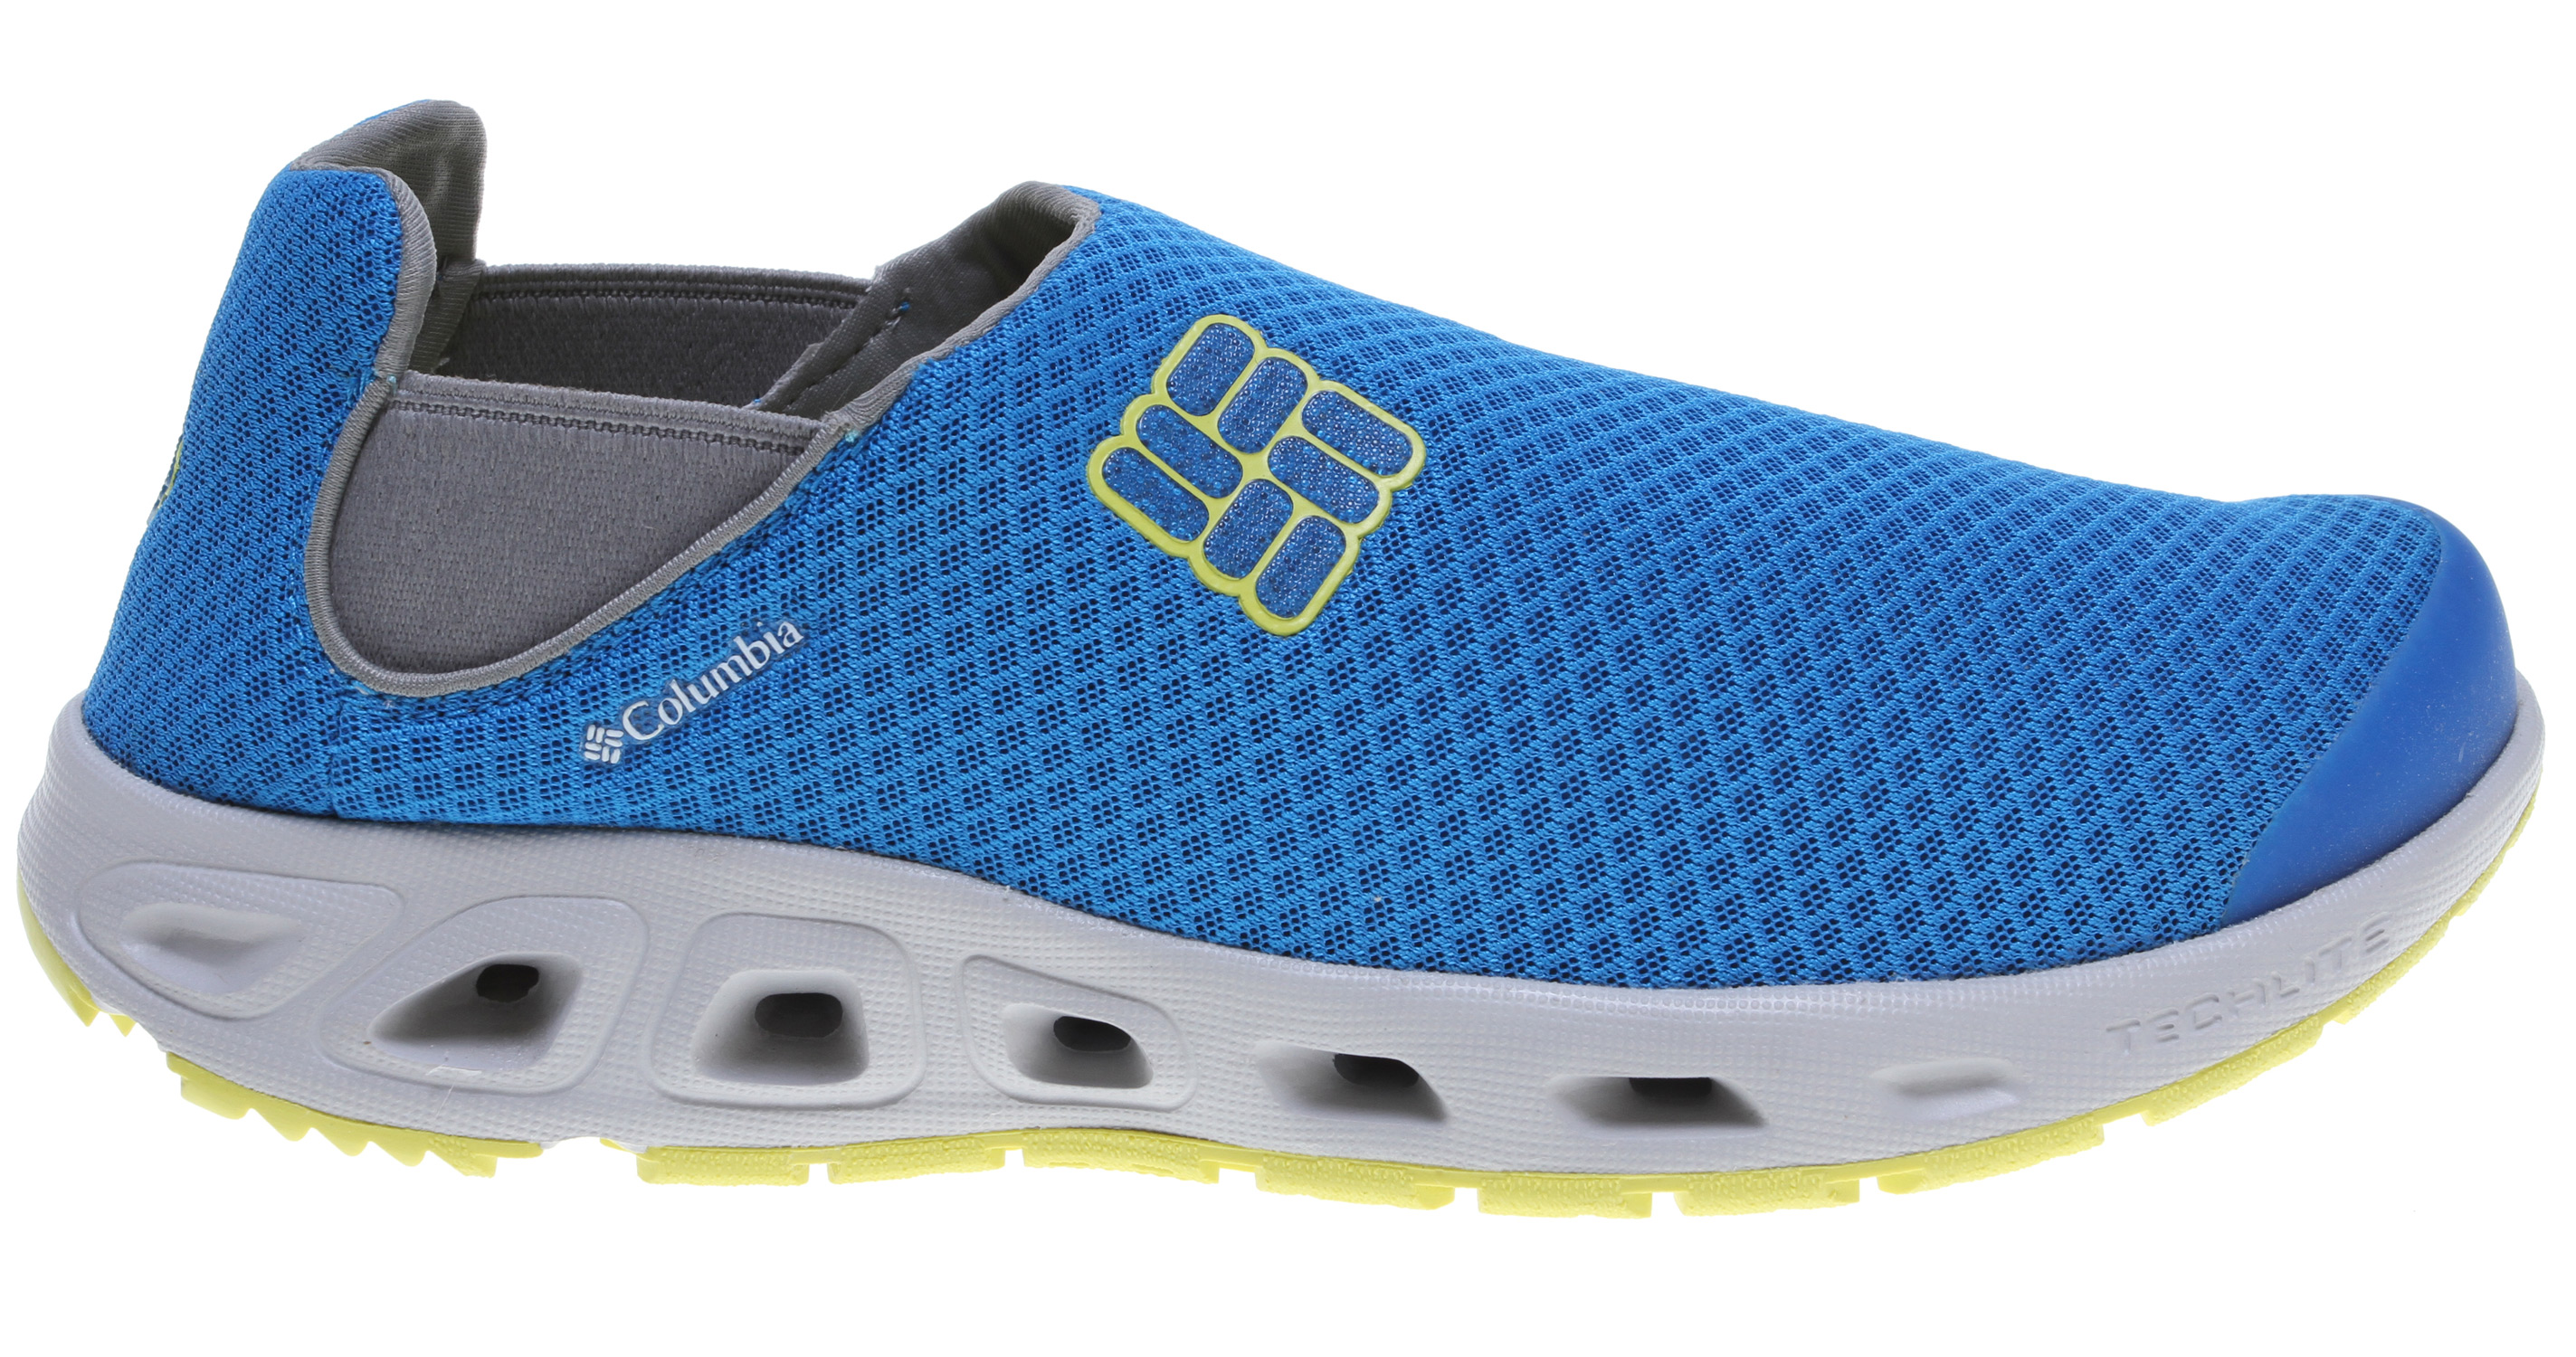 Slip-on construction makes this shoe easy to get on and off while the mesh upper, fully drainable footbed and water-specific siped outsole keep you comfortable and protected during activities in and around the water. Key Features of the Columbia Drainslip II Water Shoes: Techlite lightweight cushioned midsole Omni-Grip high traction wet grip rubber Single layer mesh/foam upper Fully drainable footbed Siped with lugs for extra traction Weight: size 9, 1/2 pair = 8.9 oz/252.31g Imported UPPER Single layer mesh/foam, Techlite technology MIDSOLE Techlite technology OMNI-GRIP OUTSOLE High traction rubber - $55.95